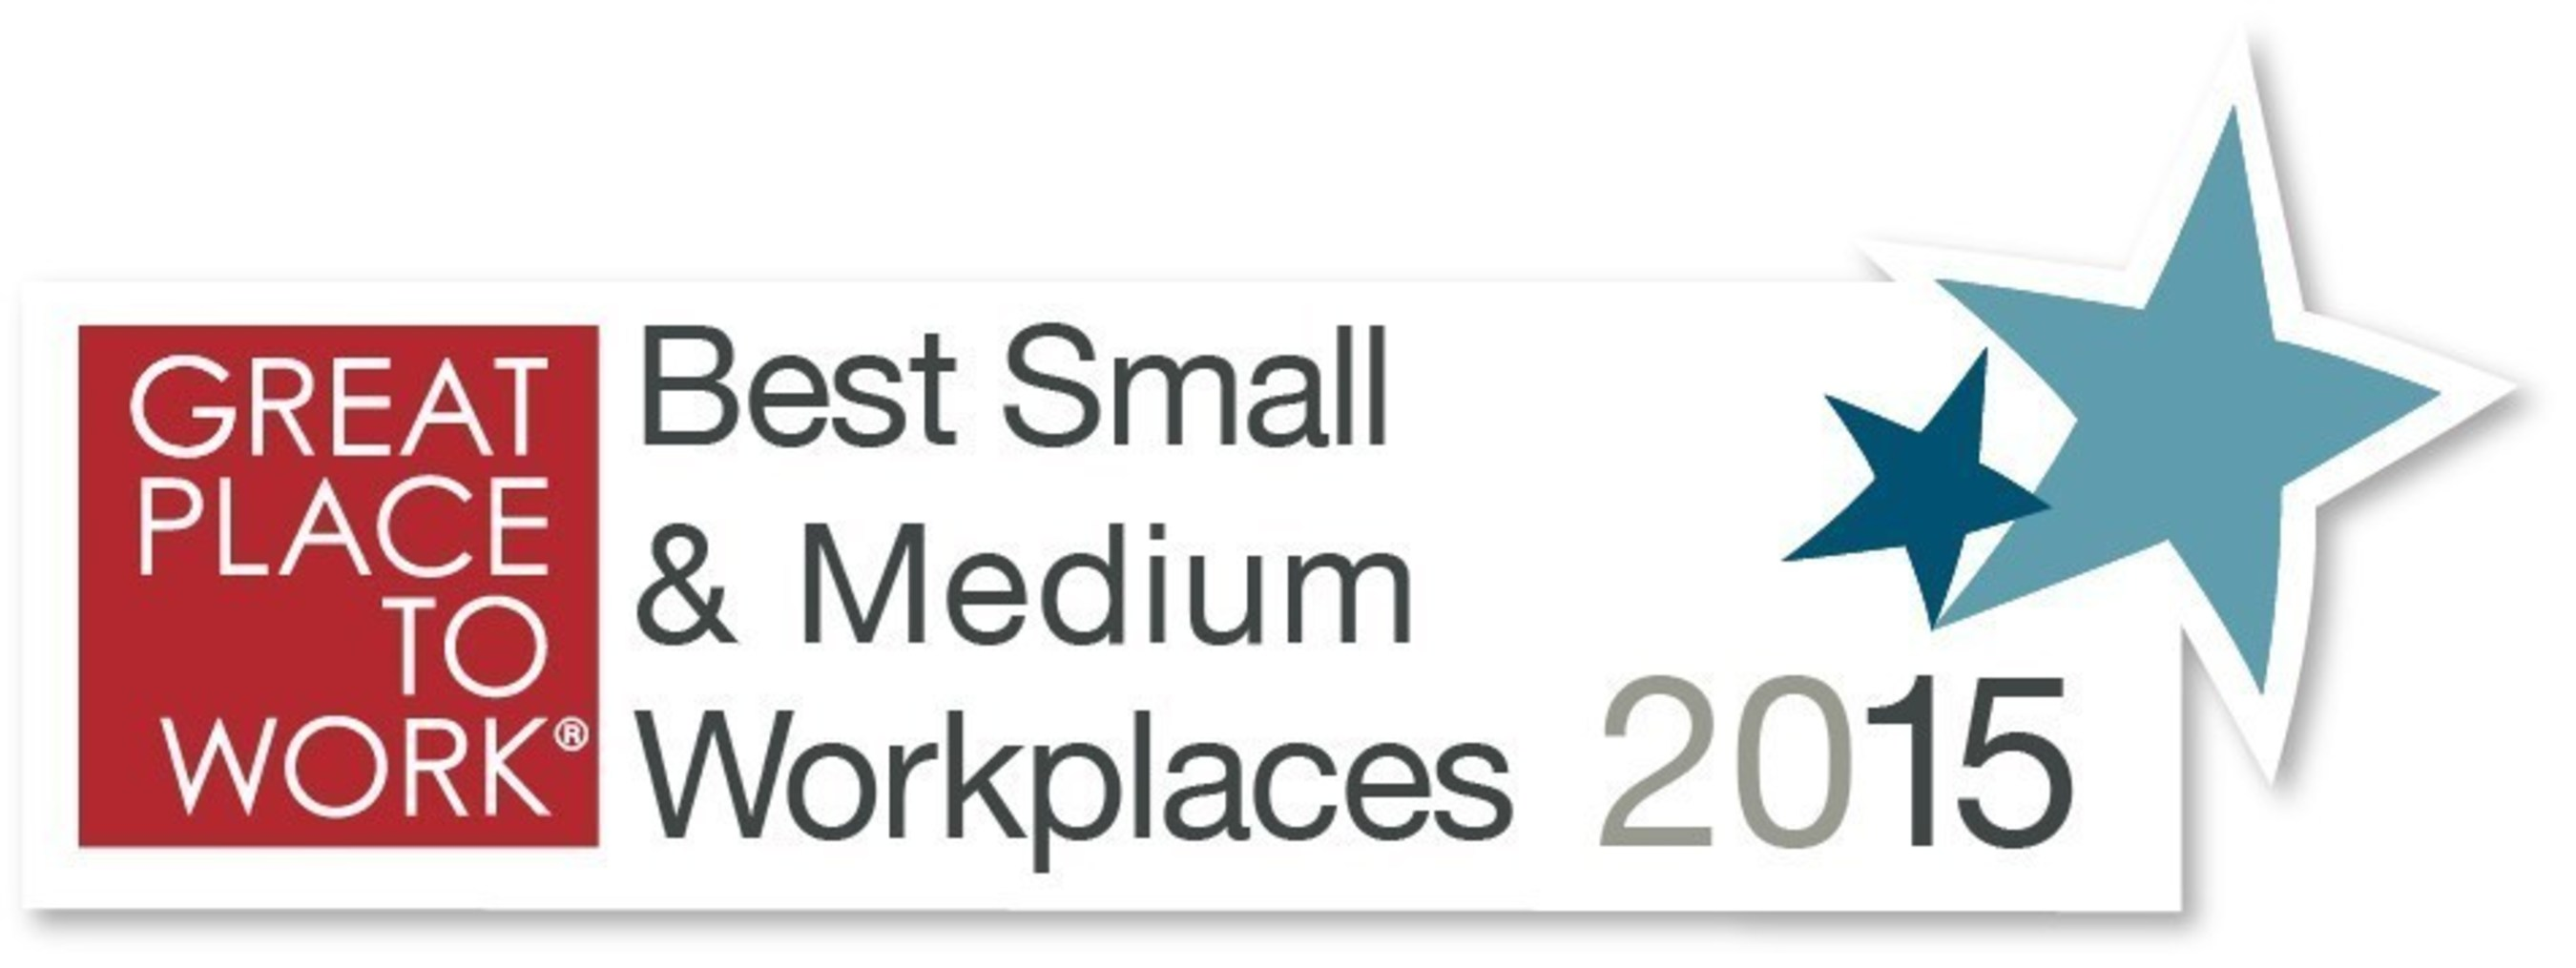 Yext Named to the Great Place to Work 2015 'Best Small and Medium Workplaces' List